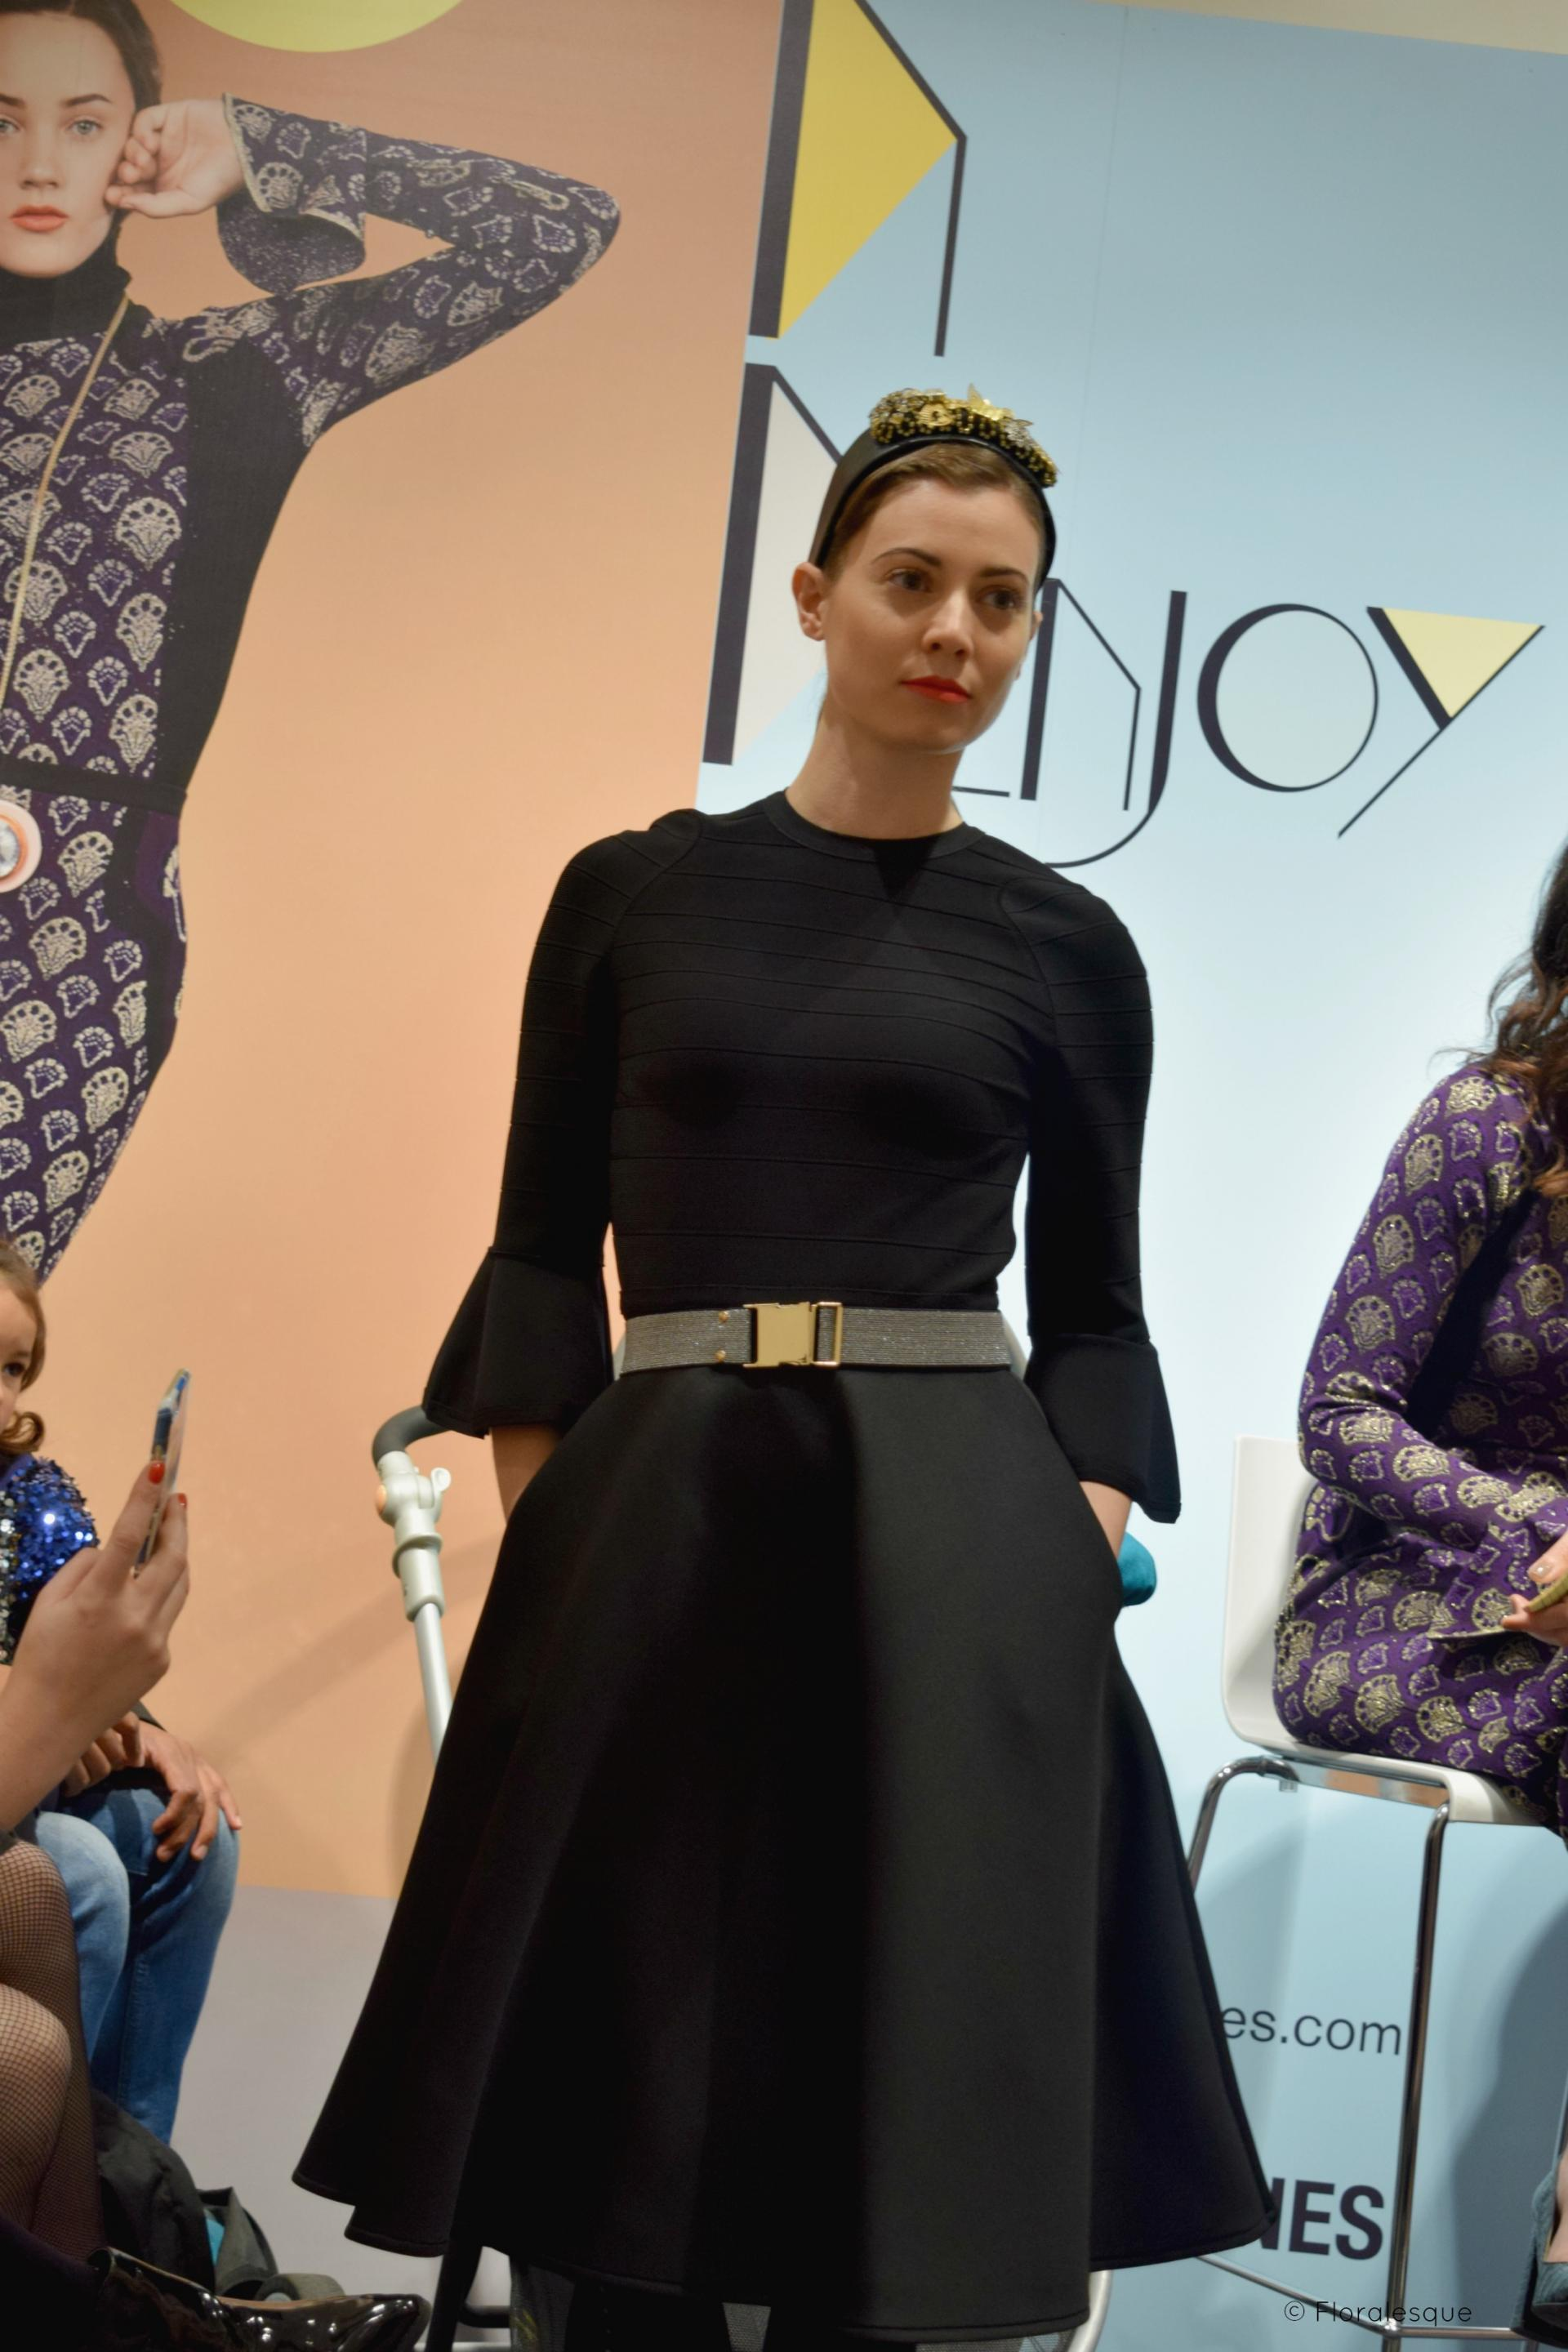 Joanne Hynes AW16 Capsule Collection for Dunnes Stores